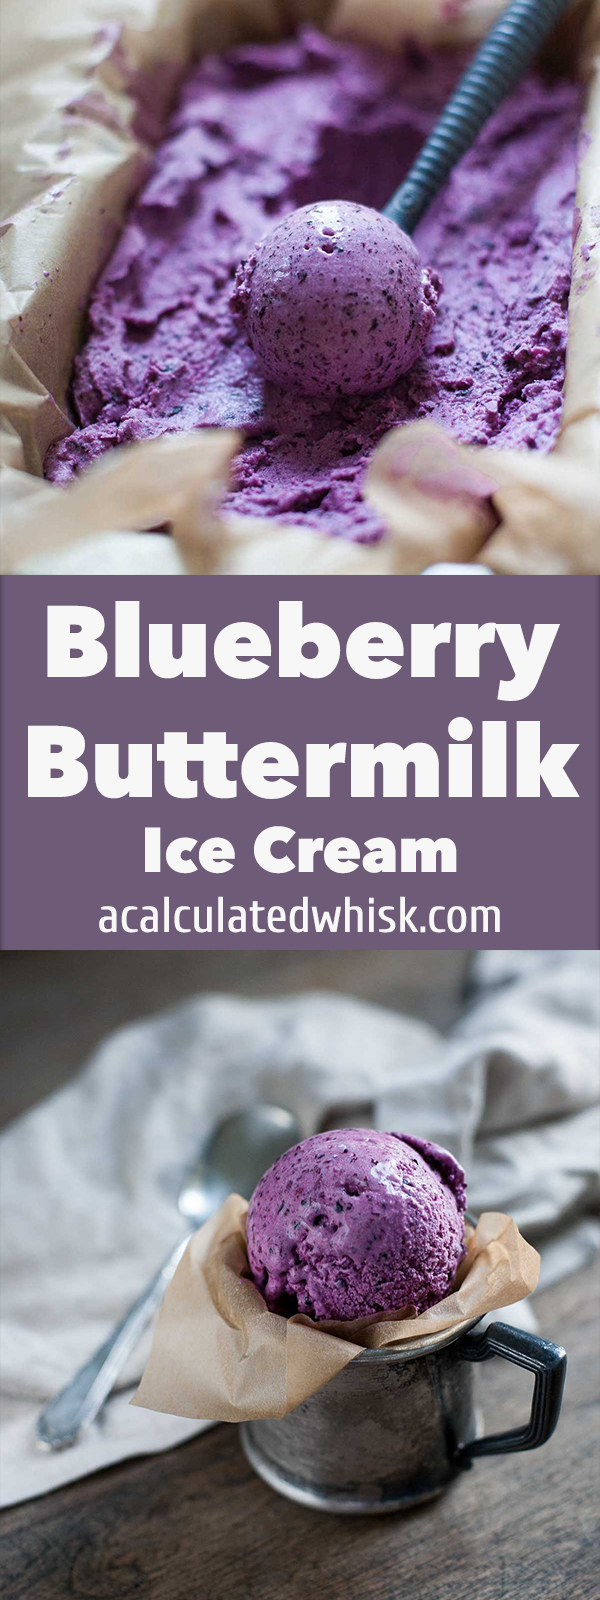 Blueberry Buttermilk Ice Cream | acalculatedwhisk.com @beckywink